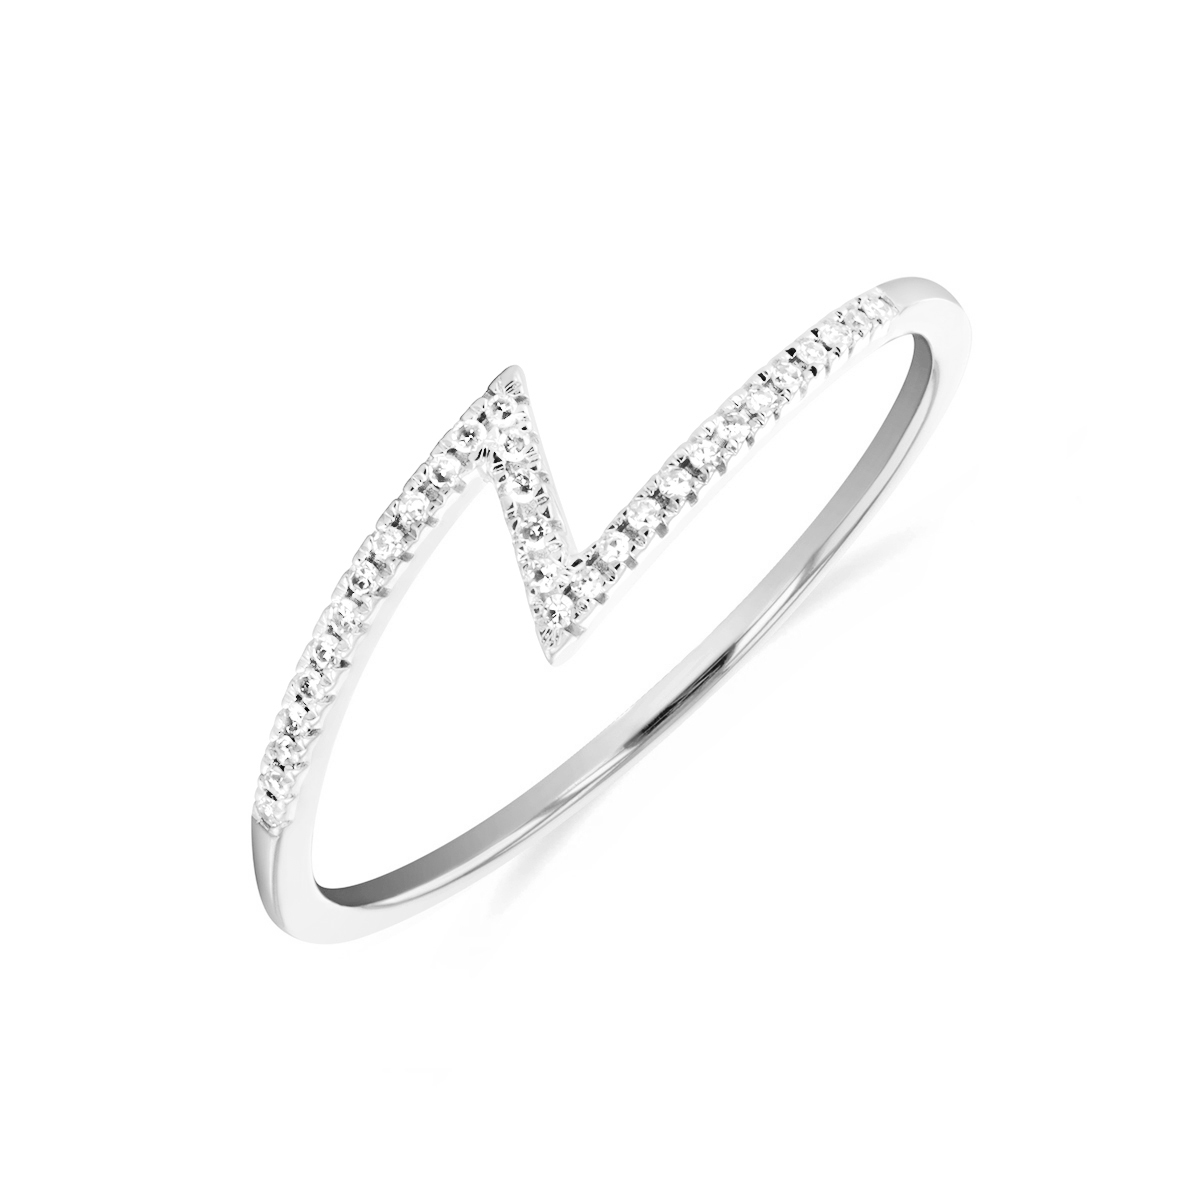 Soleil Collection Diamond Zigzag Ring   9K White Gold